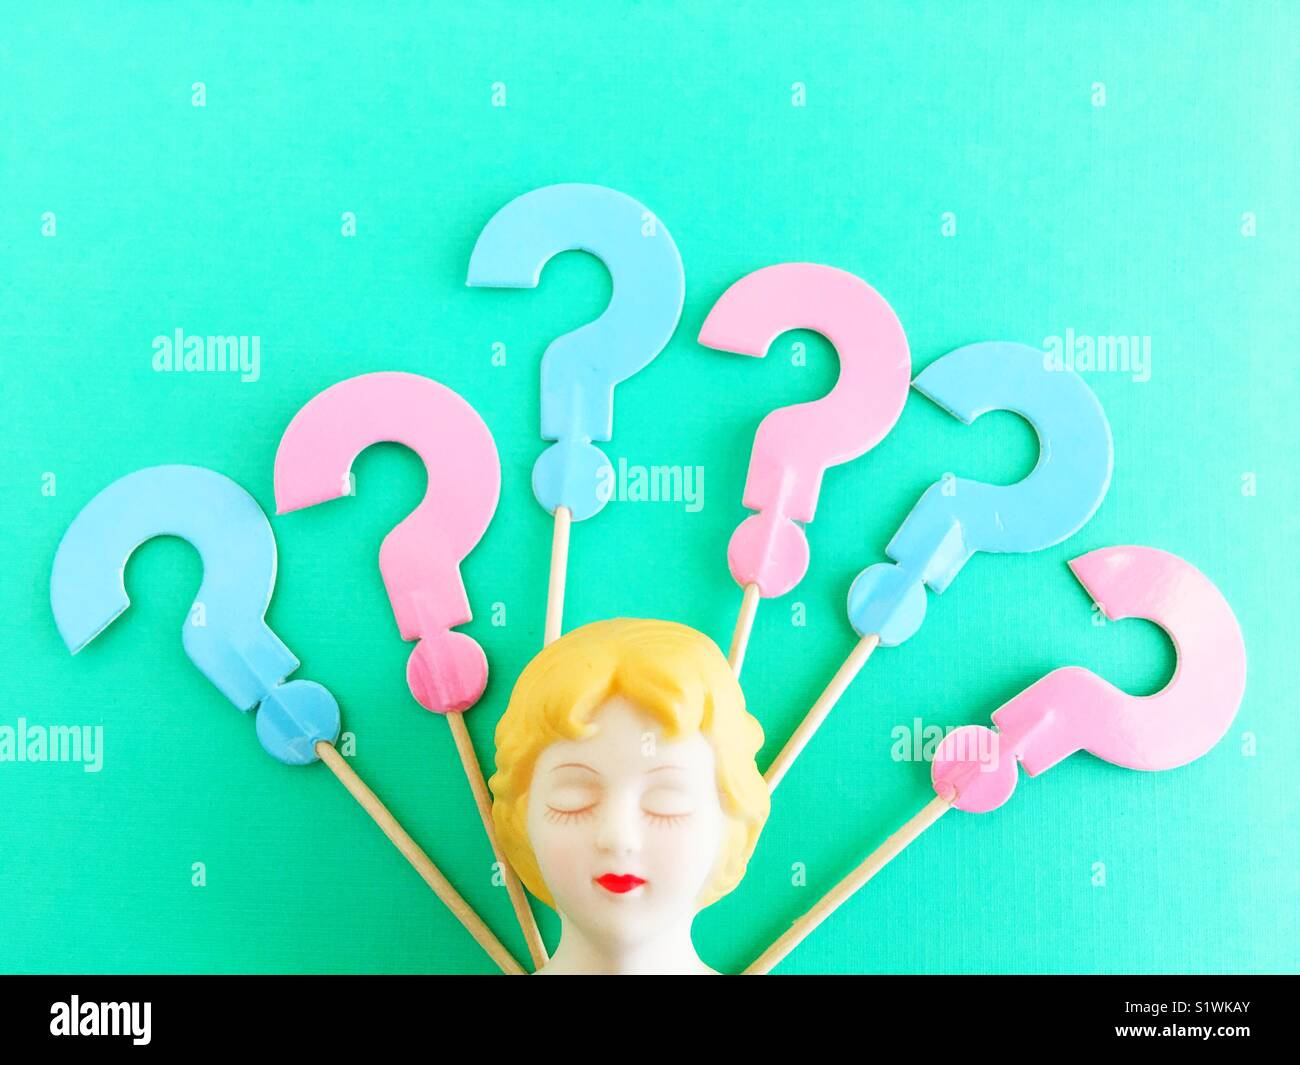 A doll head with eyes closed and question marks. - Stock Image